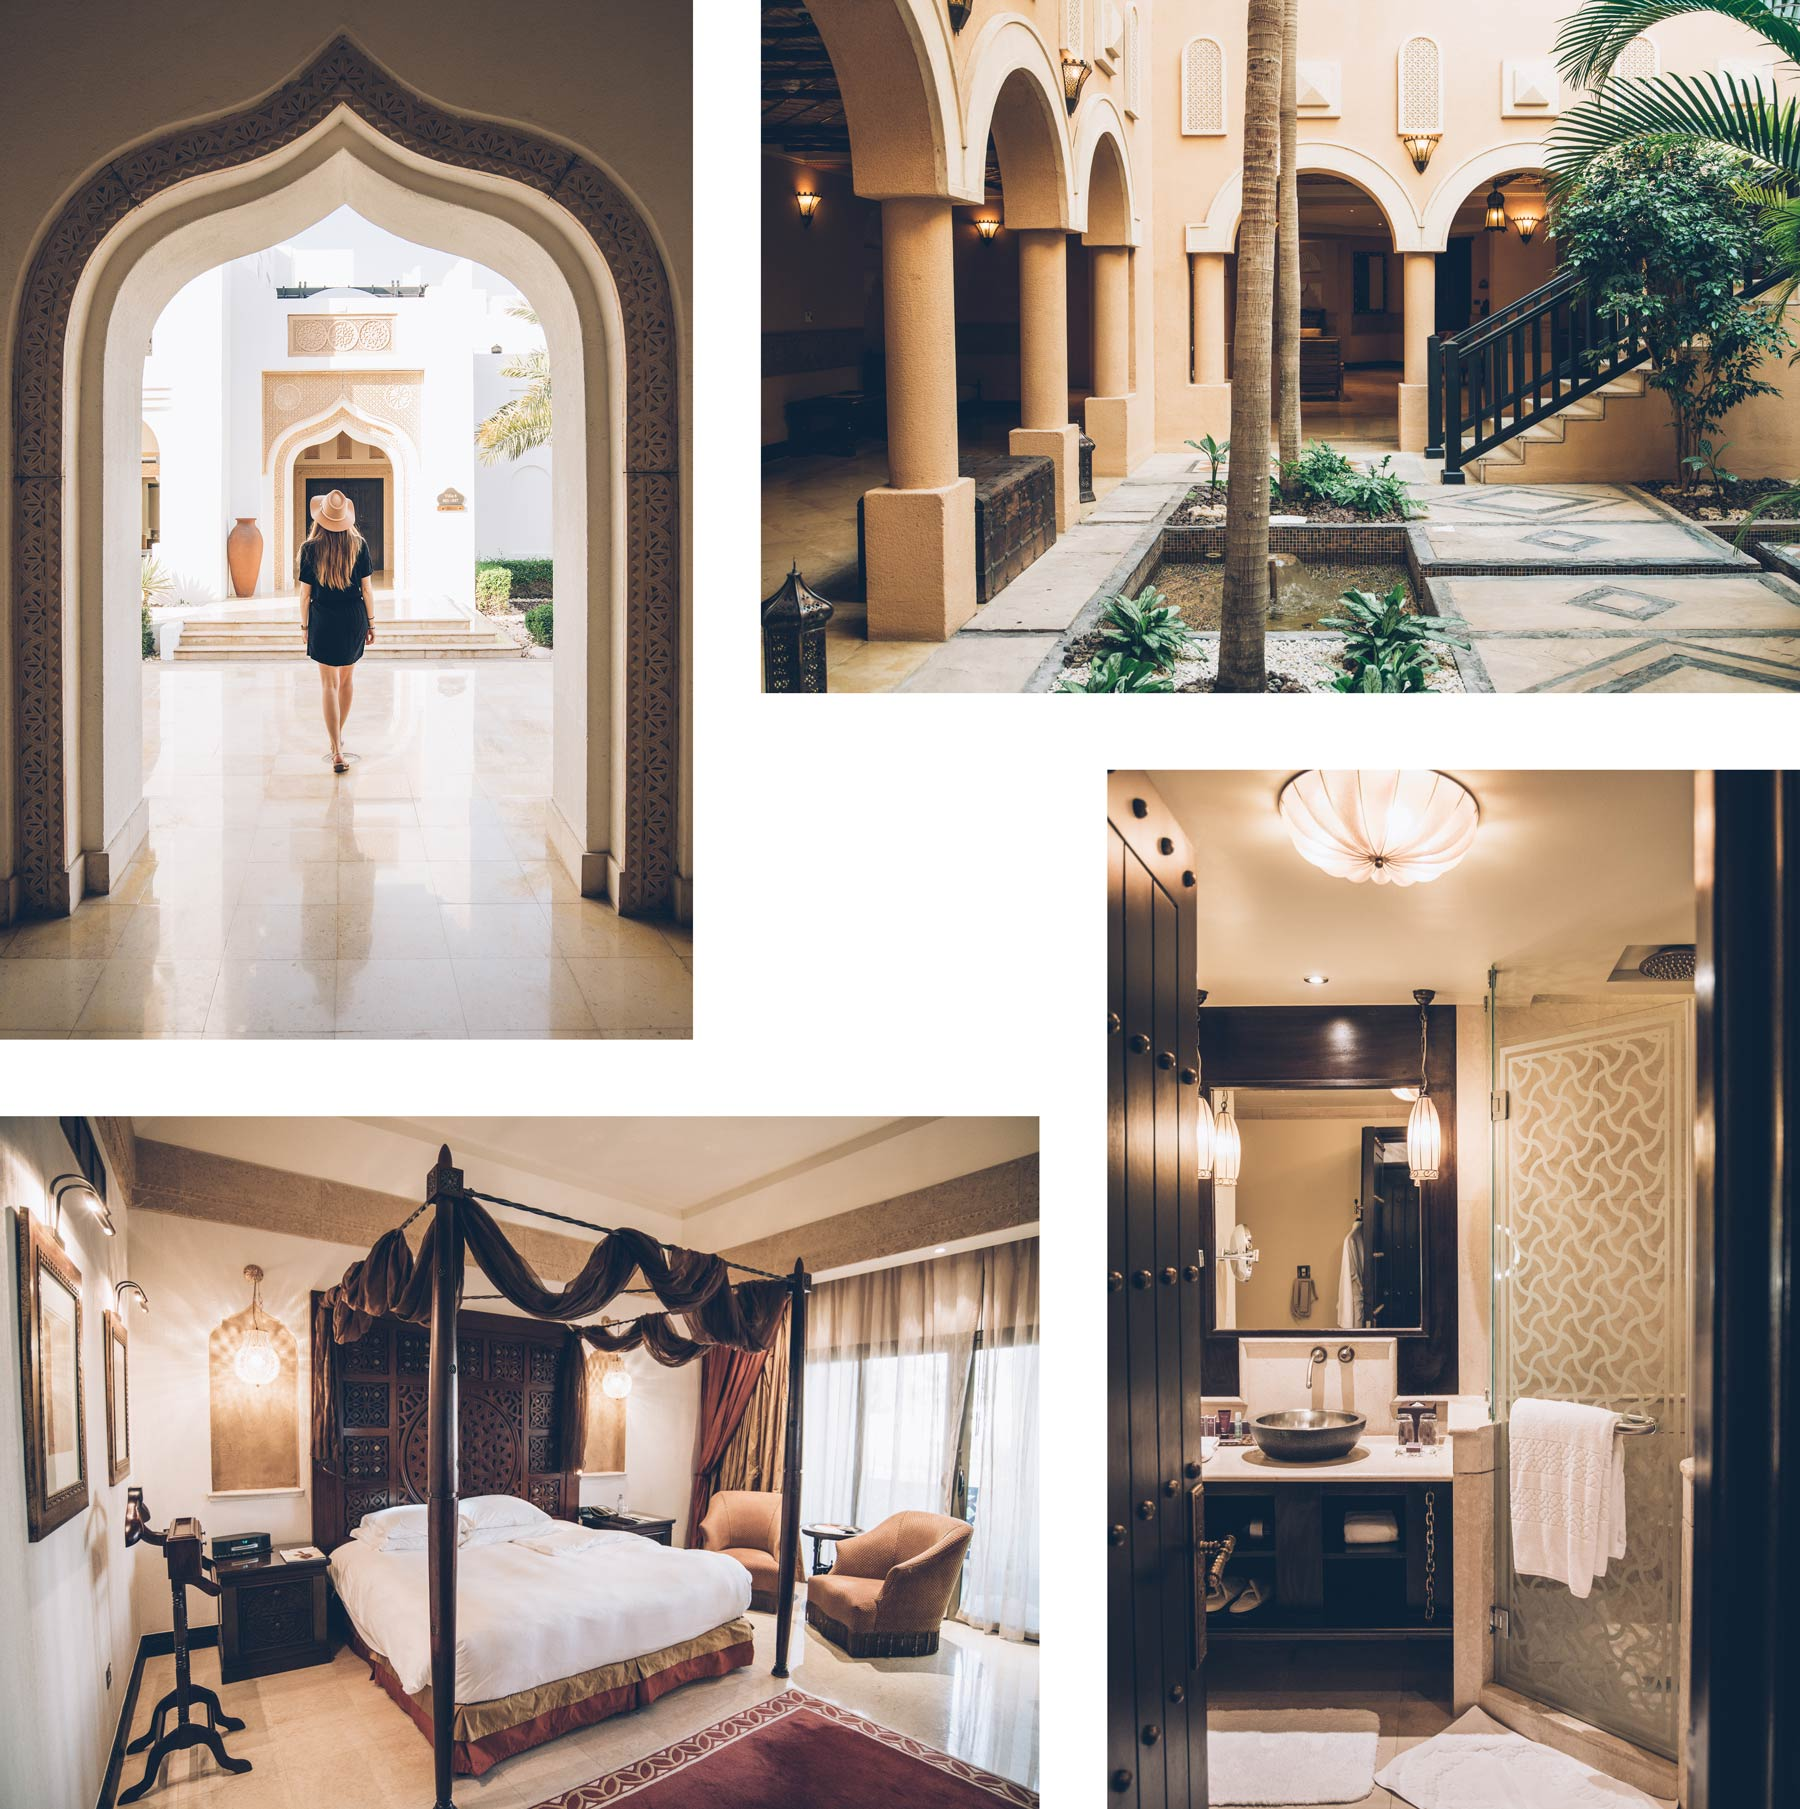 Hotel Doha: Sharq Village & Spa